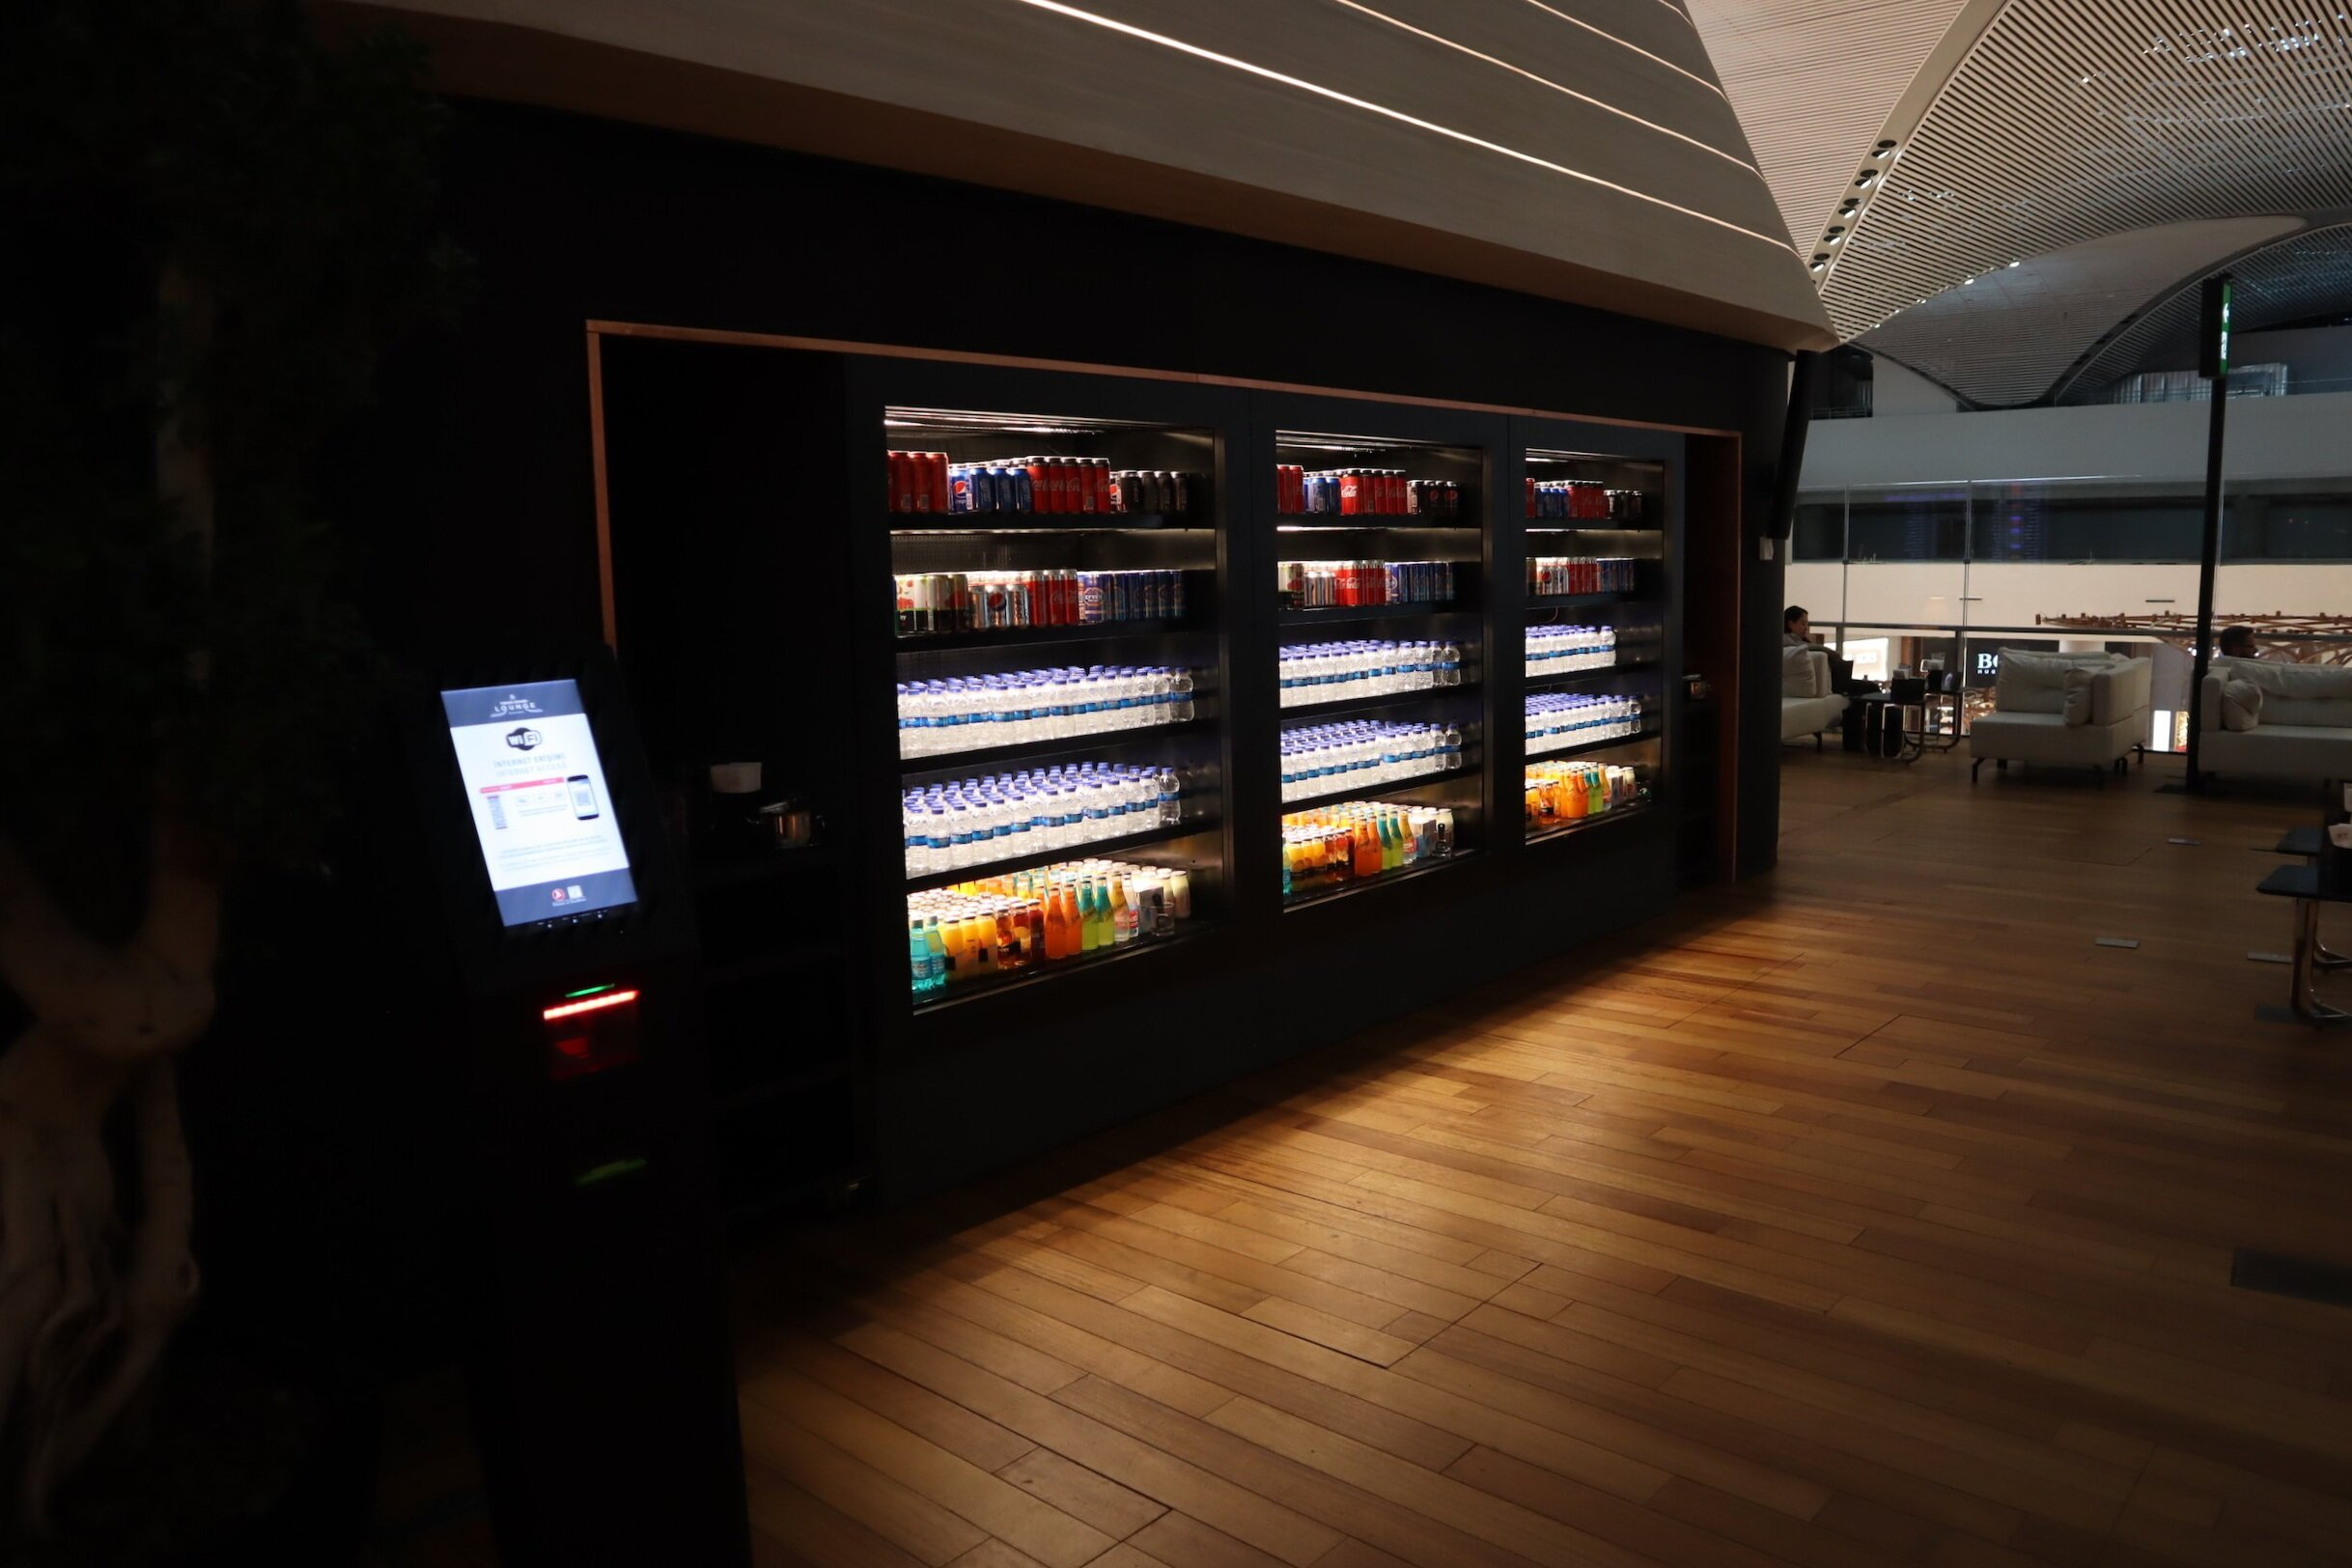 Turkish Airlines Business Lounge Istanbul – Soft drinks